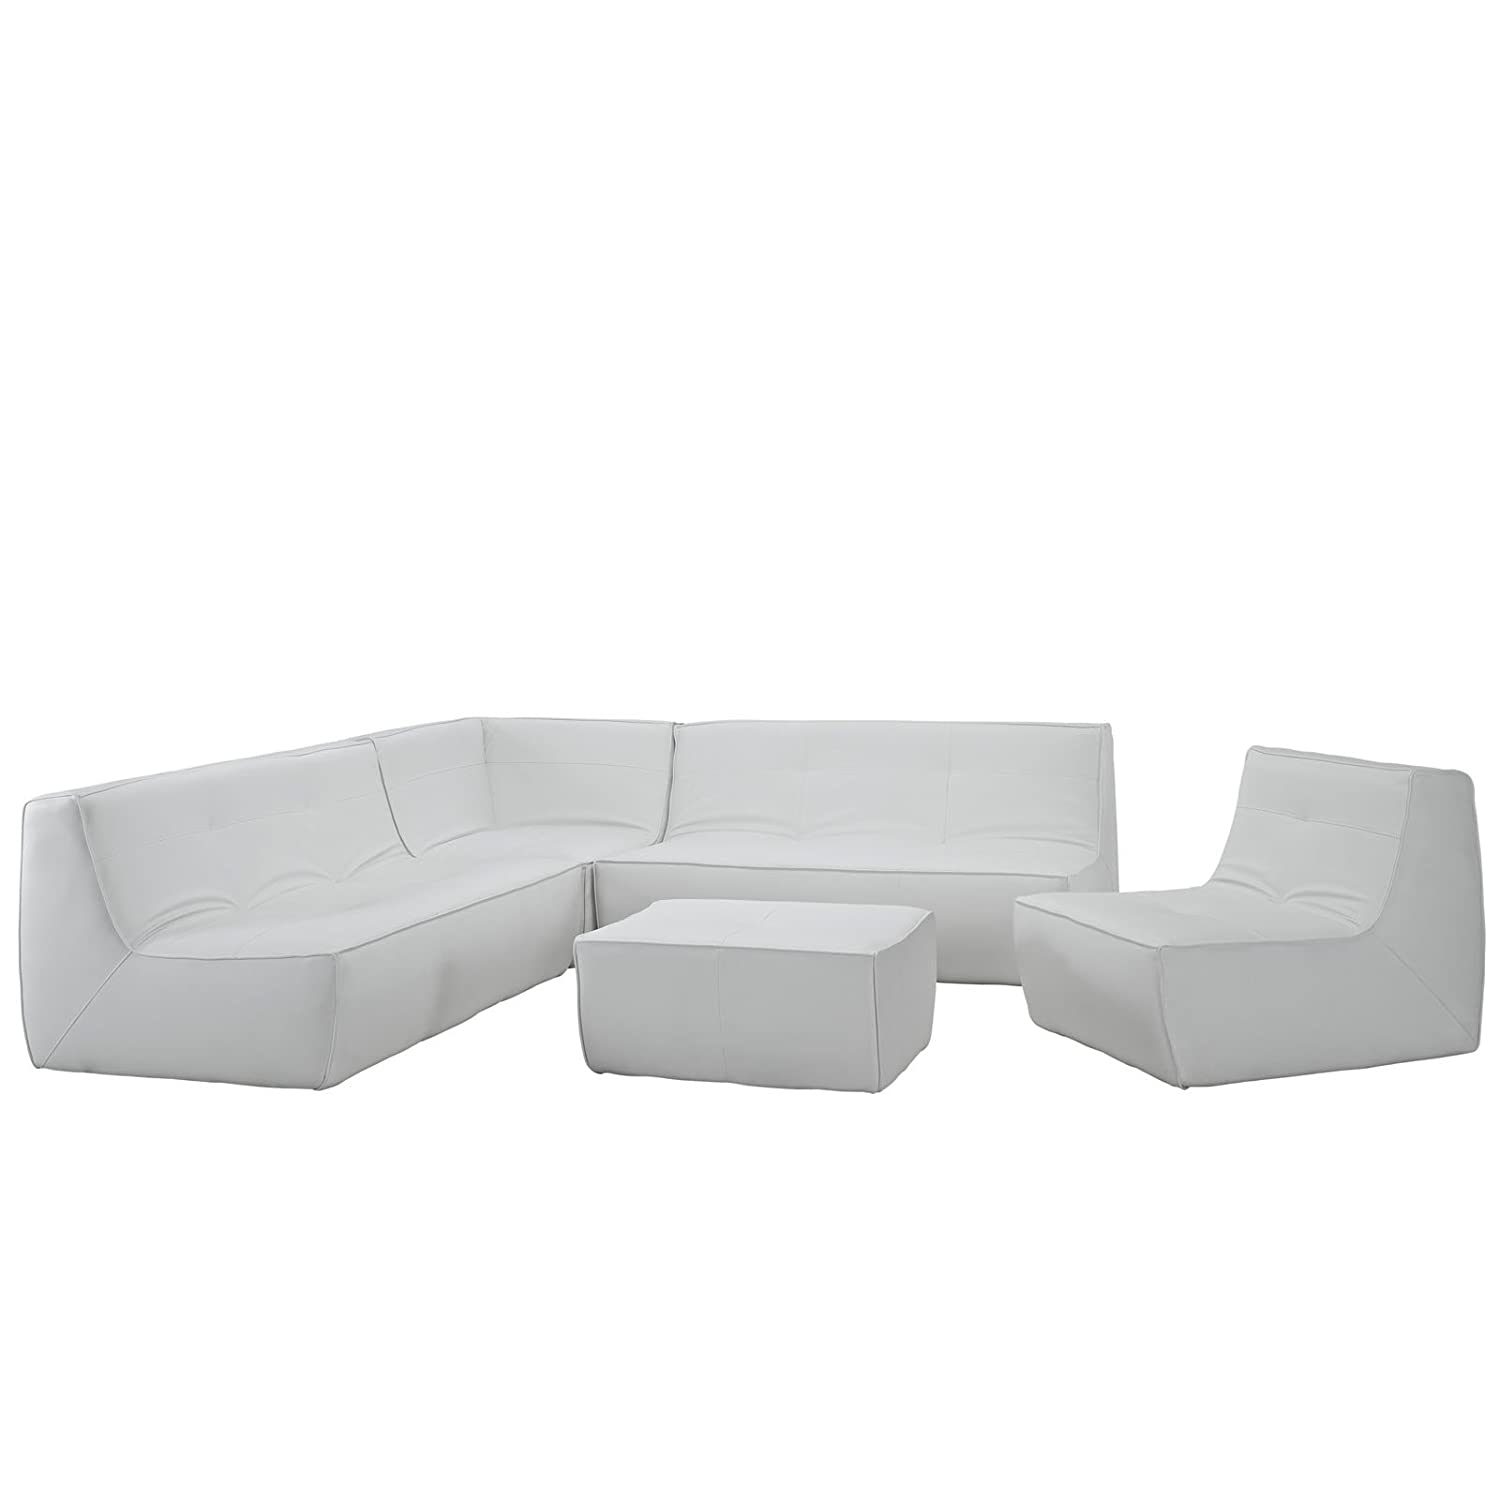 Amazon Modway Align 5 Piece Bonded Leather Sectional Sofa Set